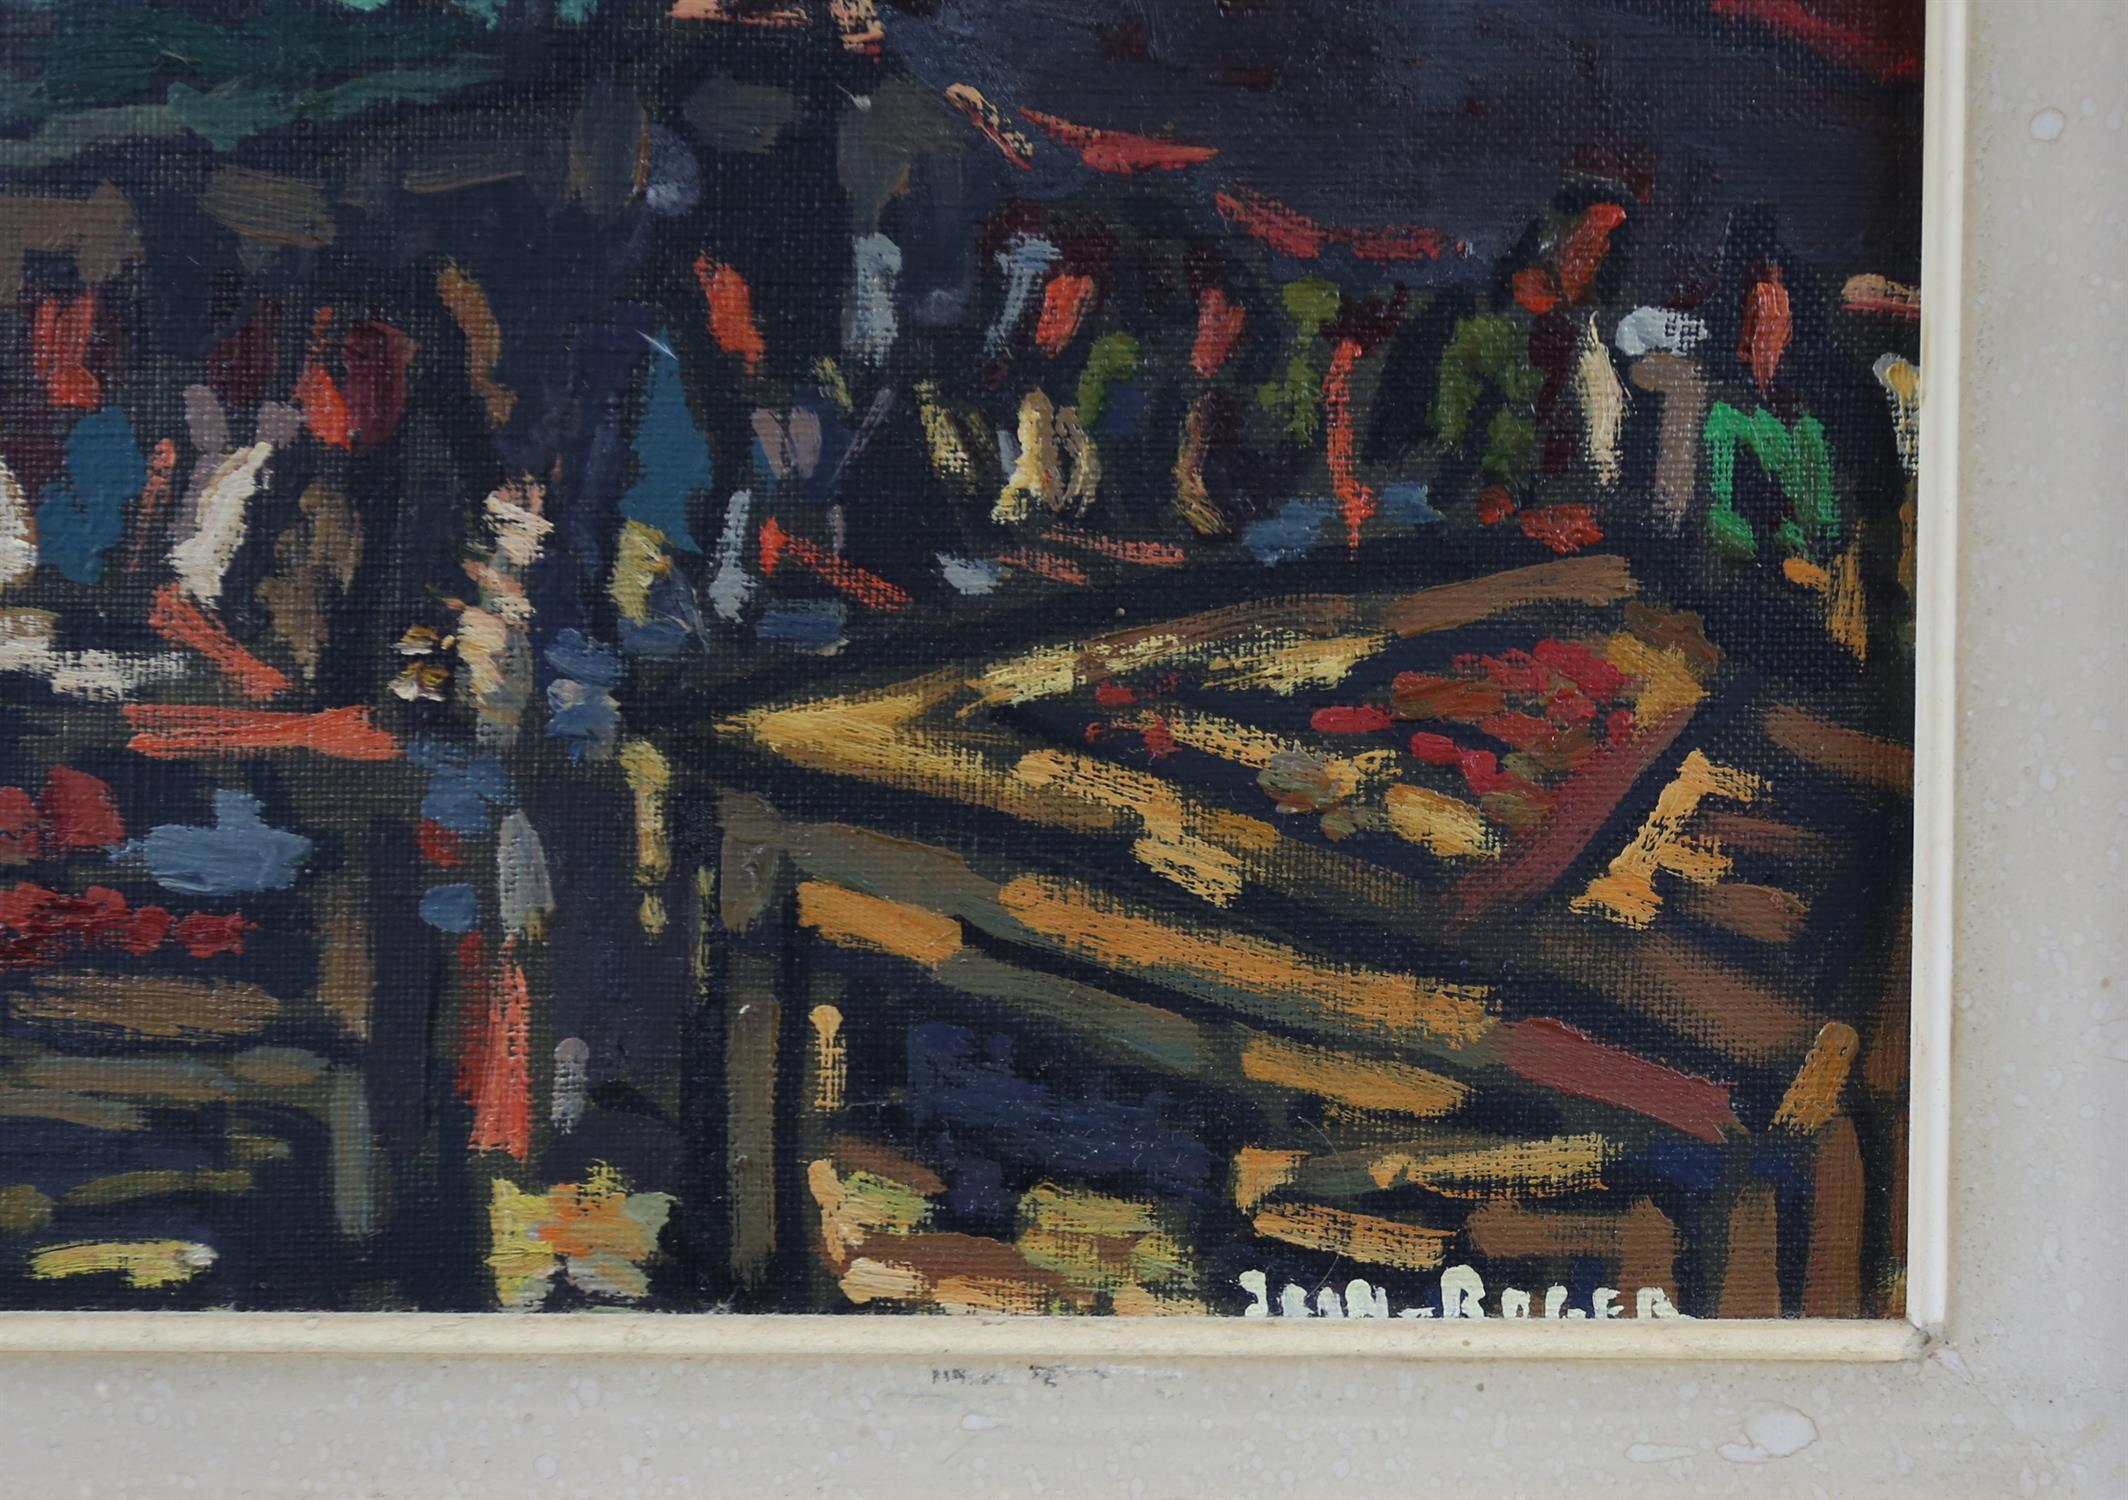 Jean-Roger (European, 1924-2015), continental market scene. Oil on canvas. Signed lower right. - Image 4 of 4